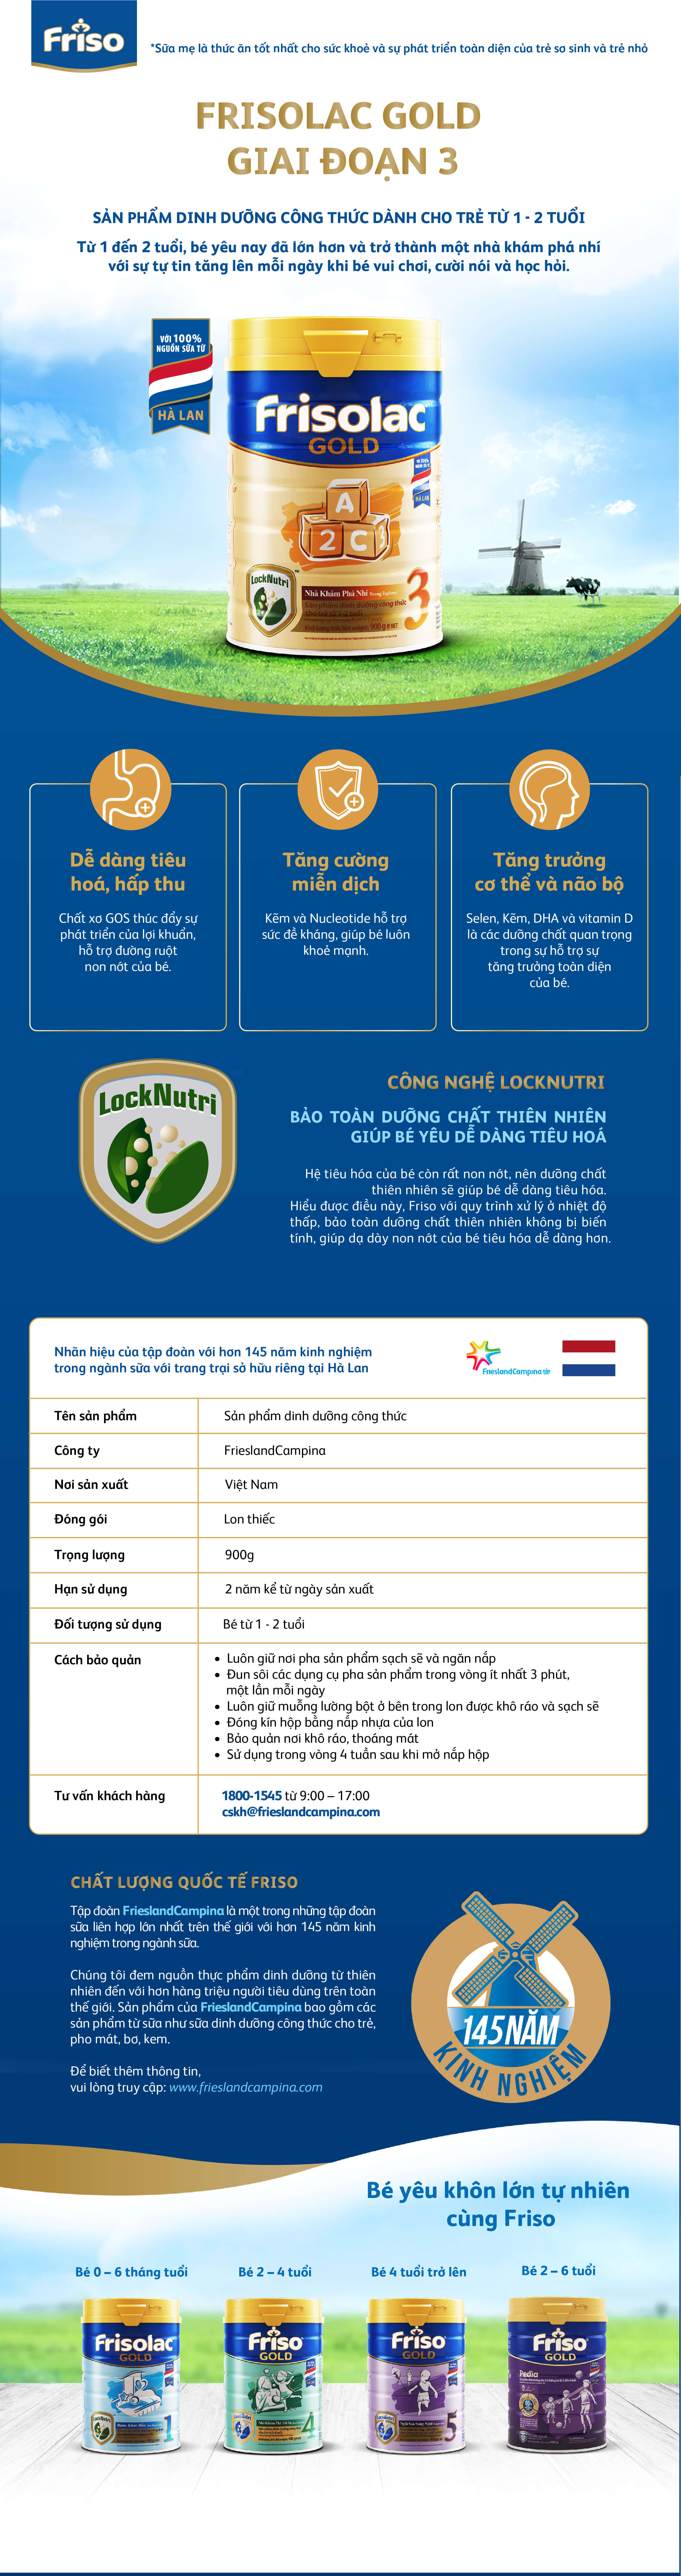 friso-master infographic-03